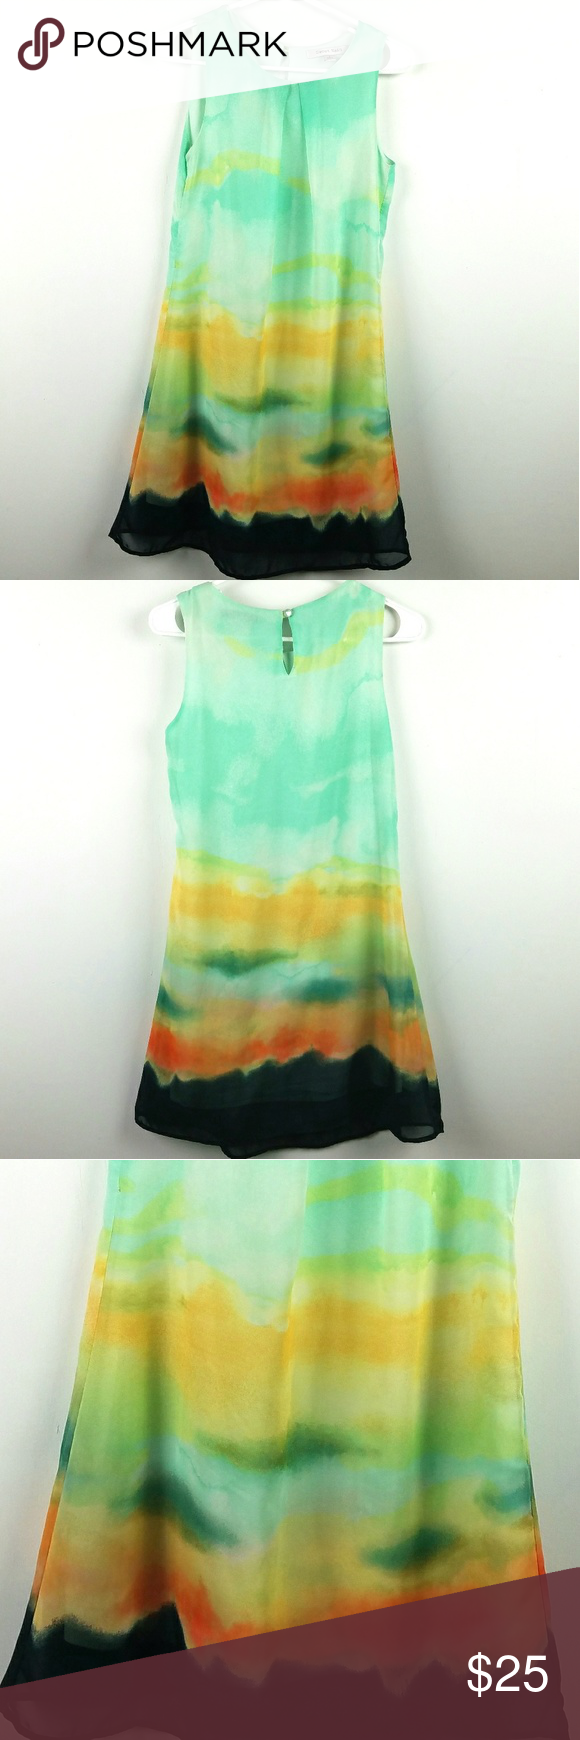 1695984cf37b Sweet Rain Mint Watercolor Dress Sz Small Stunning! Looks like a watercolor  sunset! Size Small Keyhole cutout in the back Sweet Rain Dresses